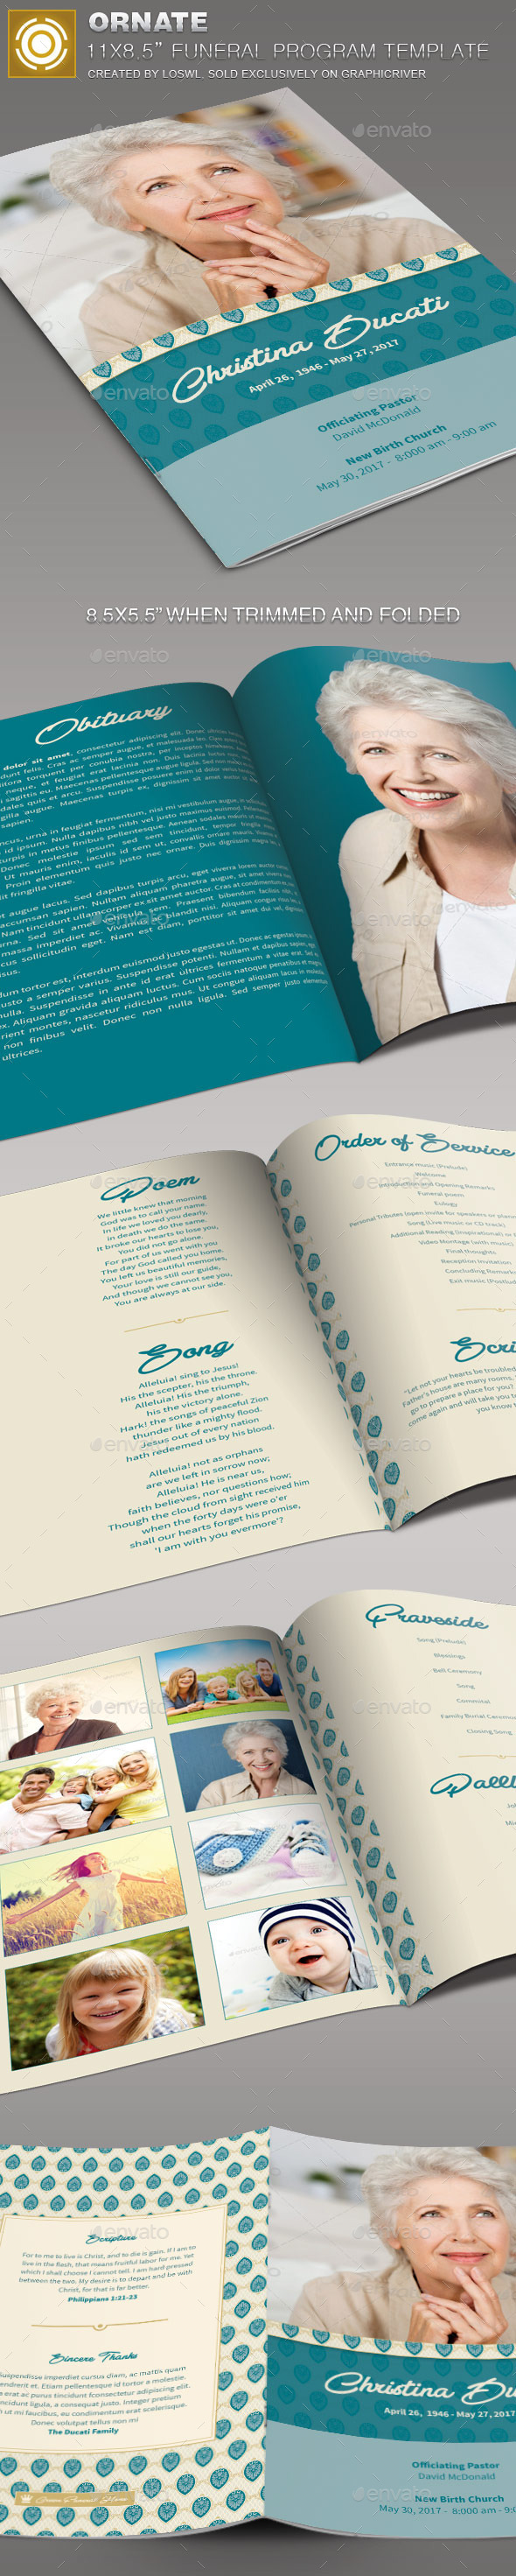 Ornate funeral program template by loswl on deviantart for Program brochure templates